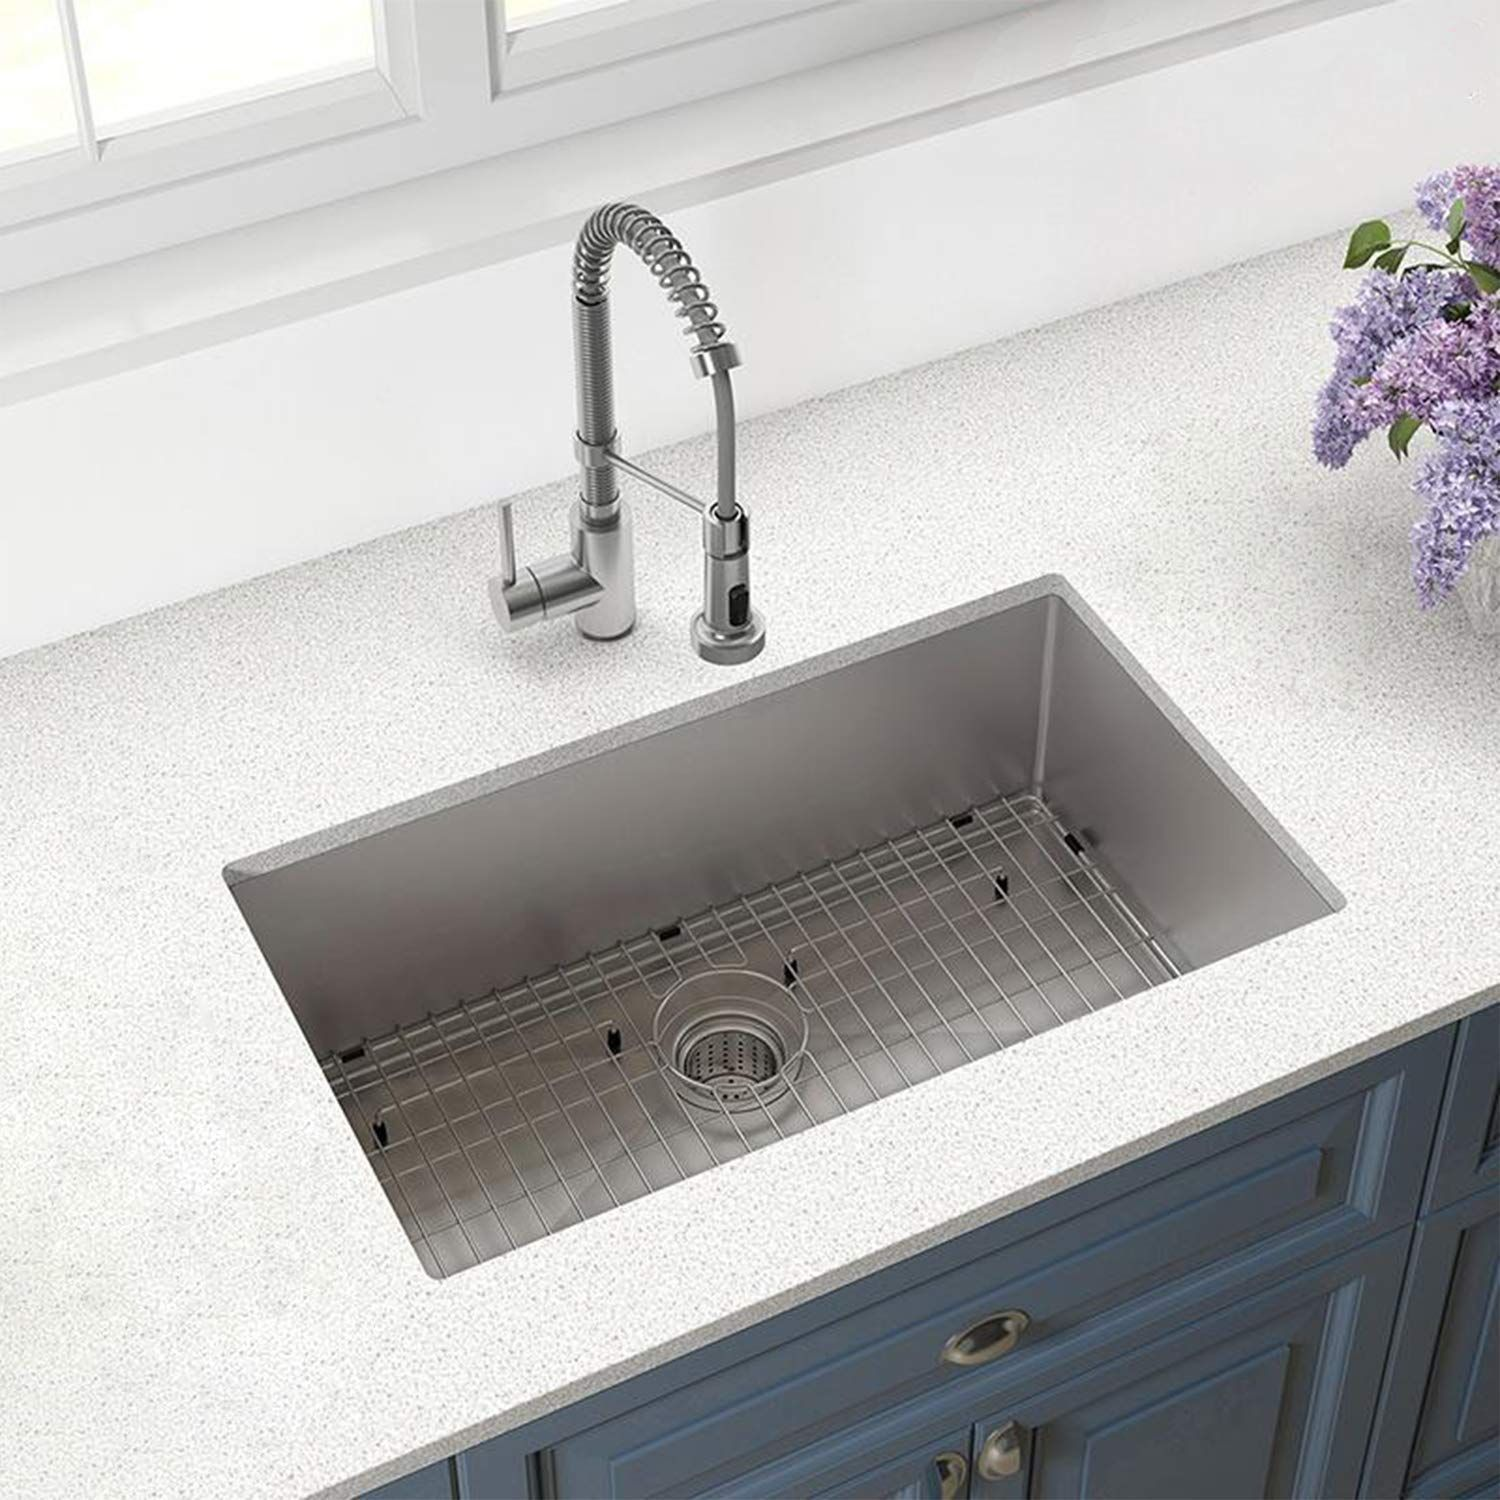 32 Inch Stainless Steel Kitchen Sink Undermount 10 Inch Deep Steel Kitchen Sink Stainless Steel Kitchen Sinks For Sale